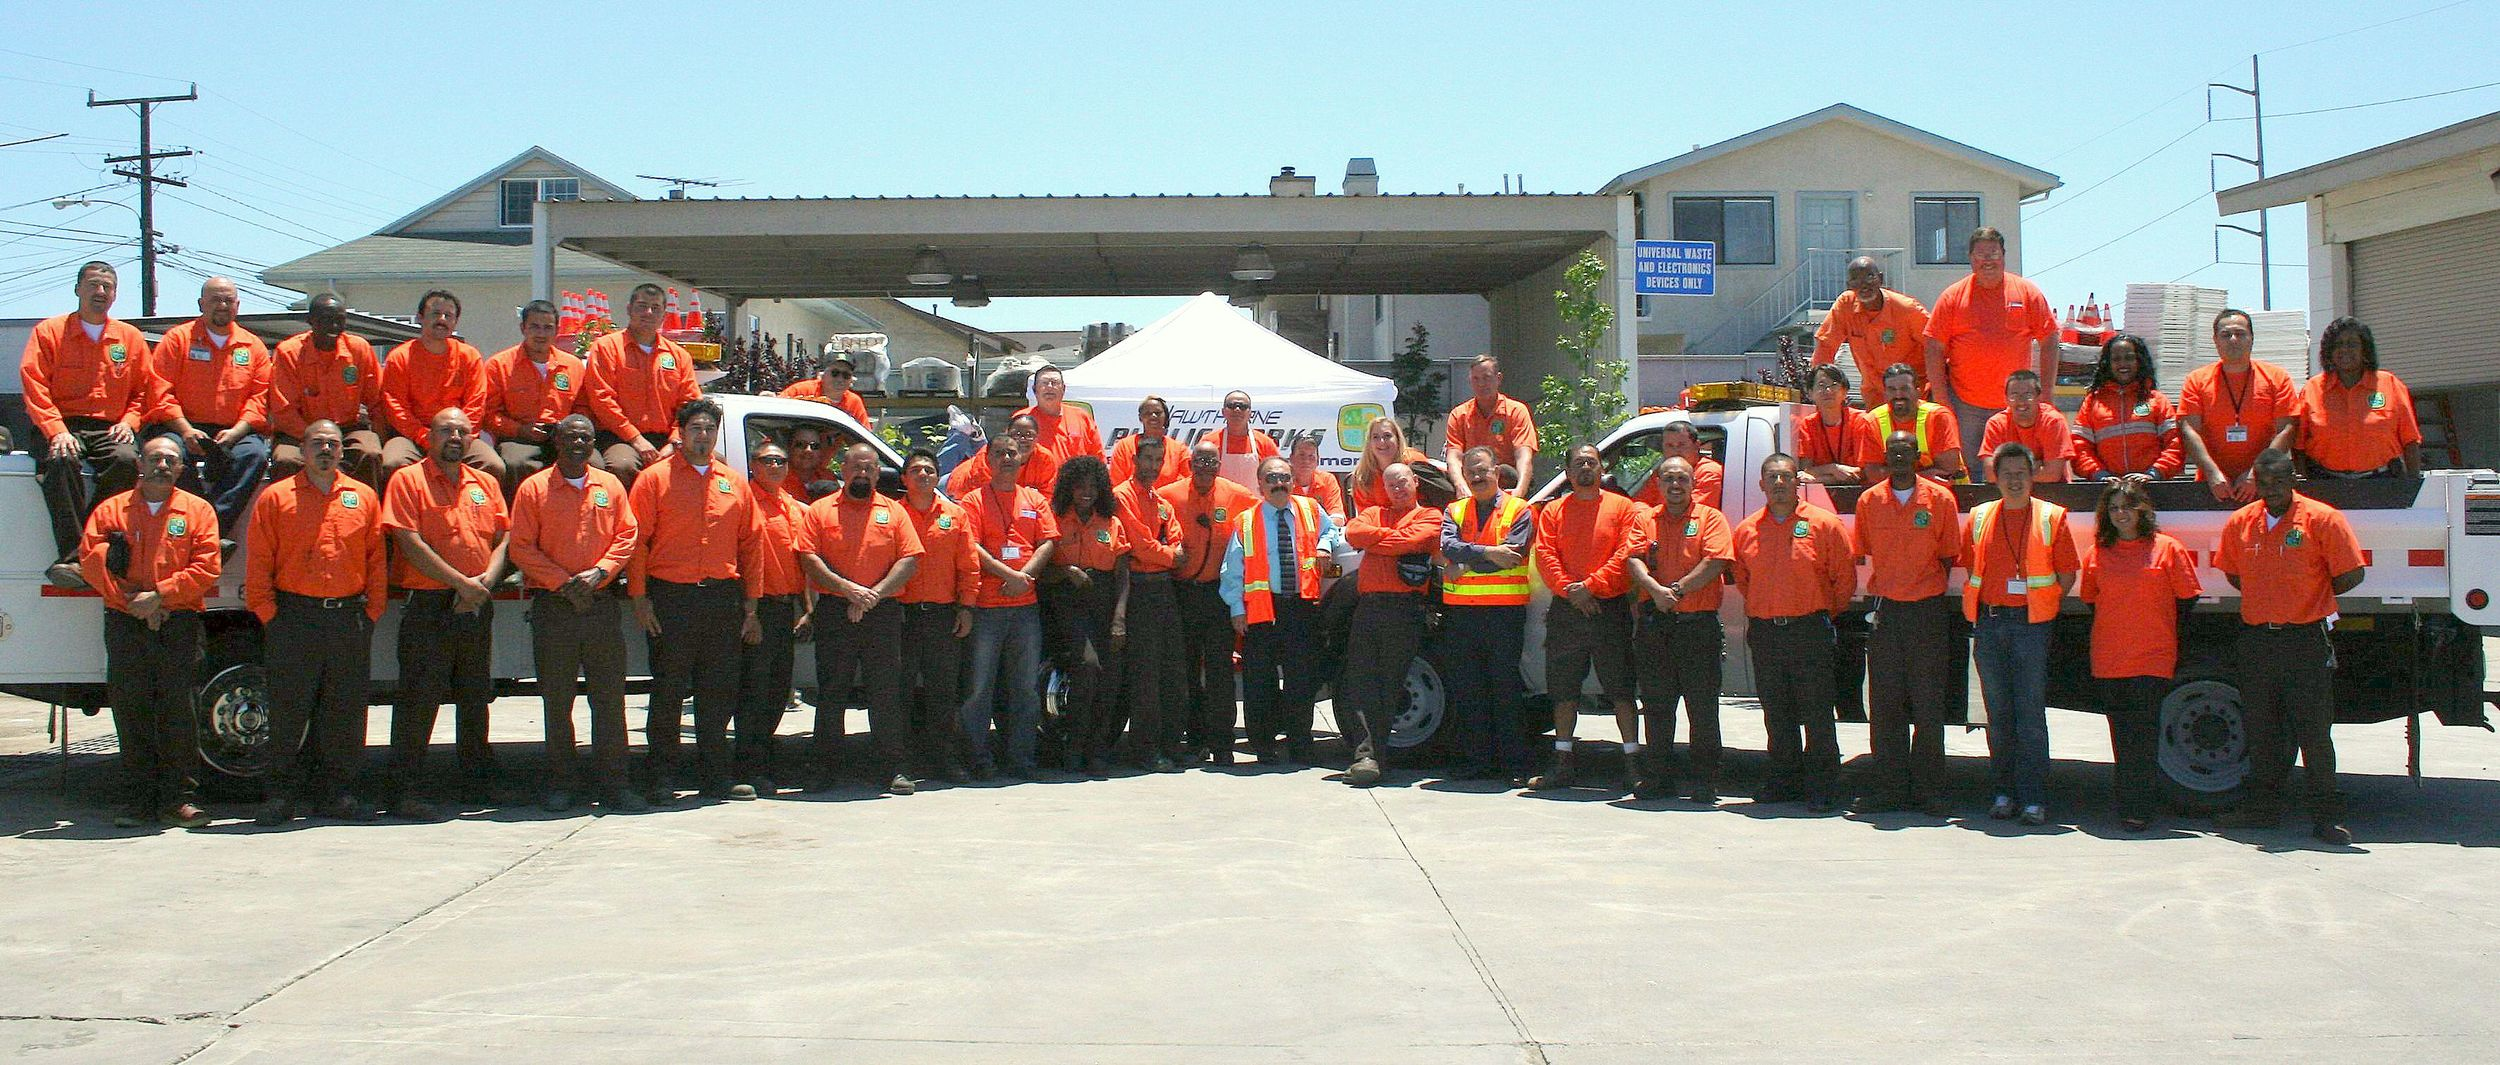 Copy of Public Works Crew